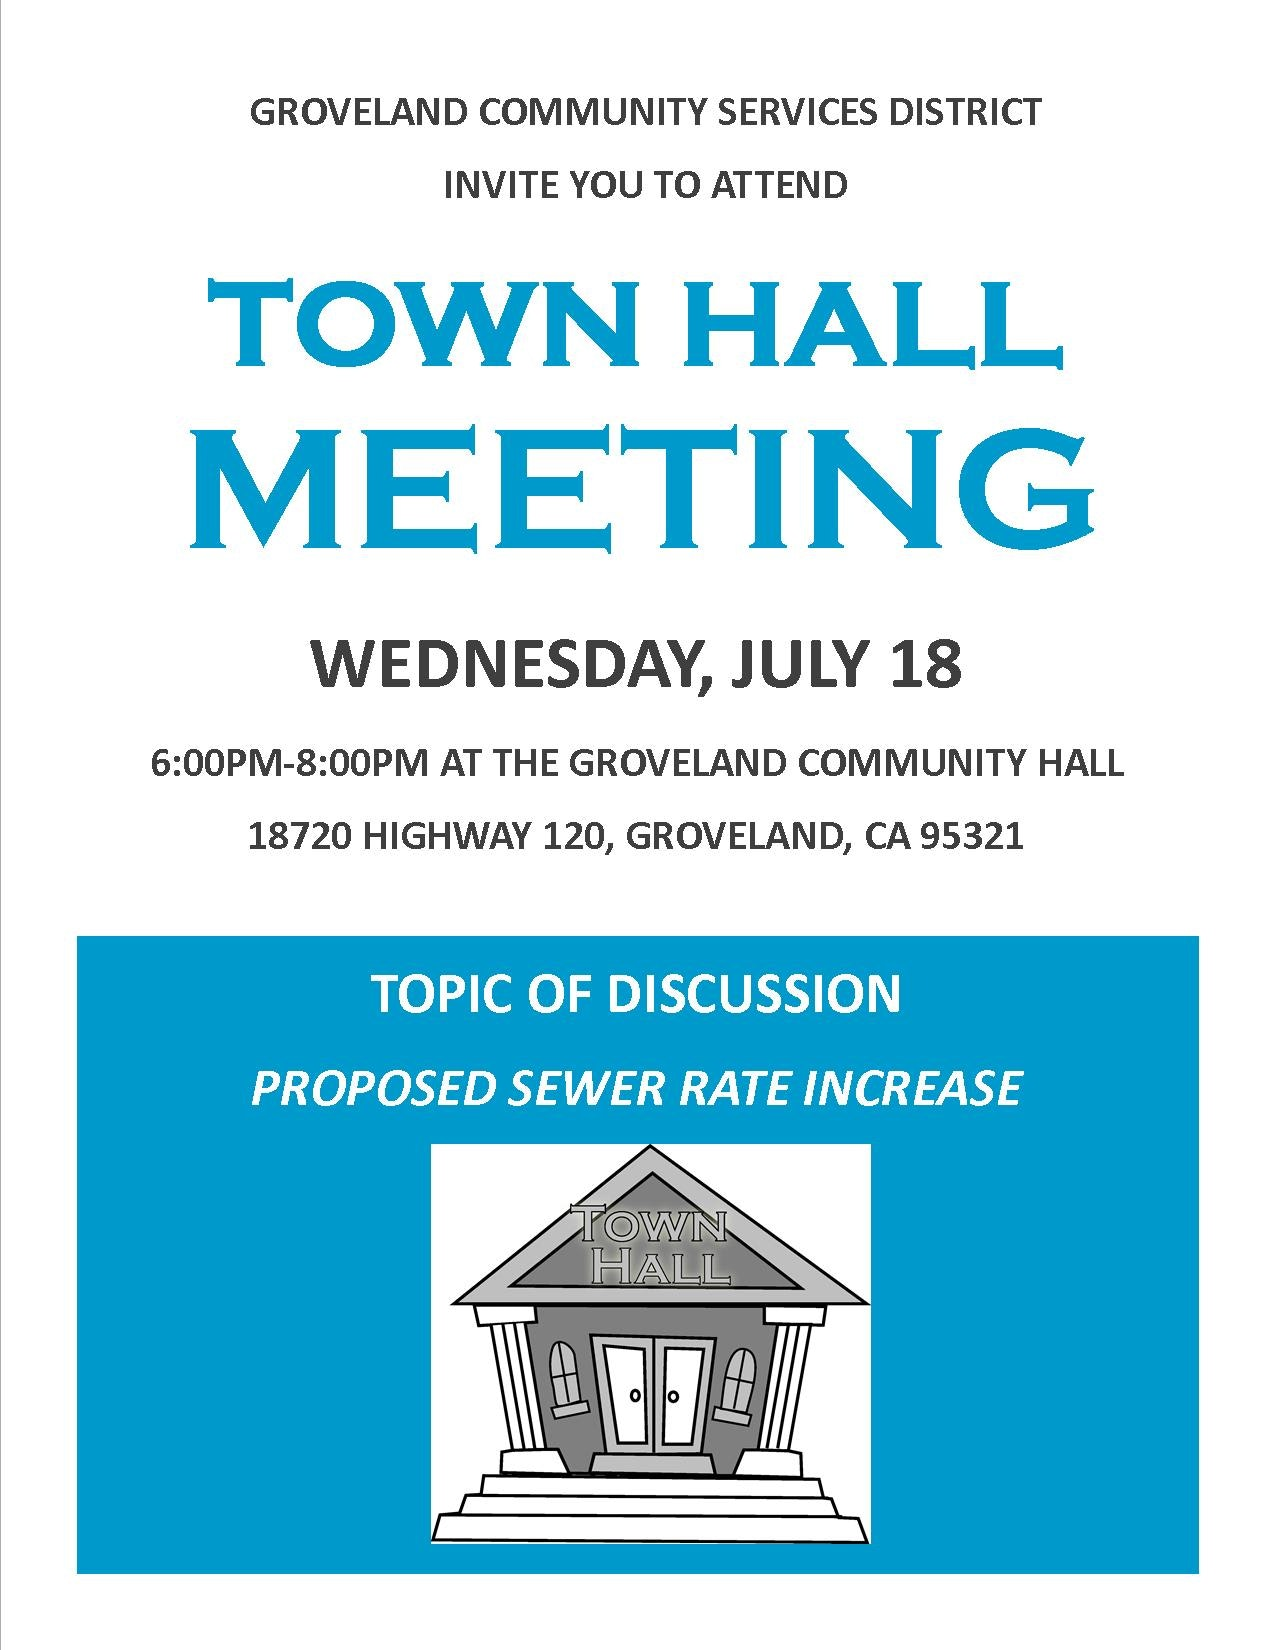 Town Hall Meeting Groveland Community Services District